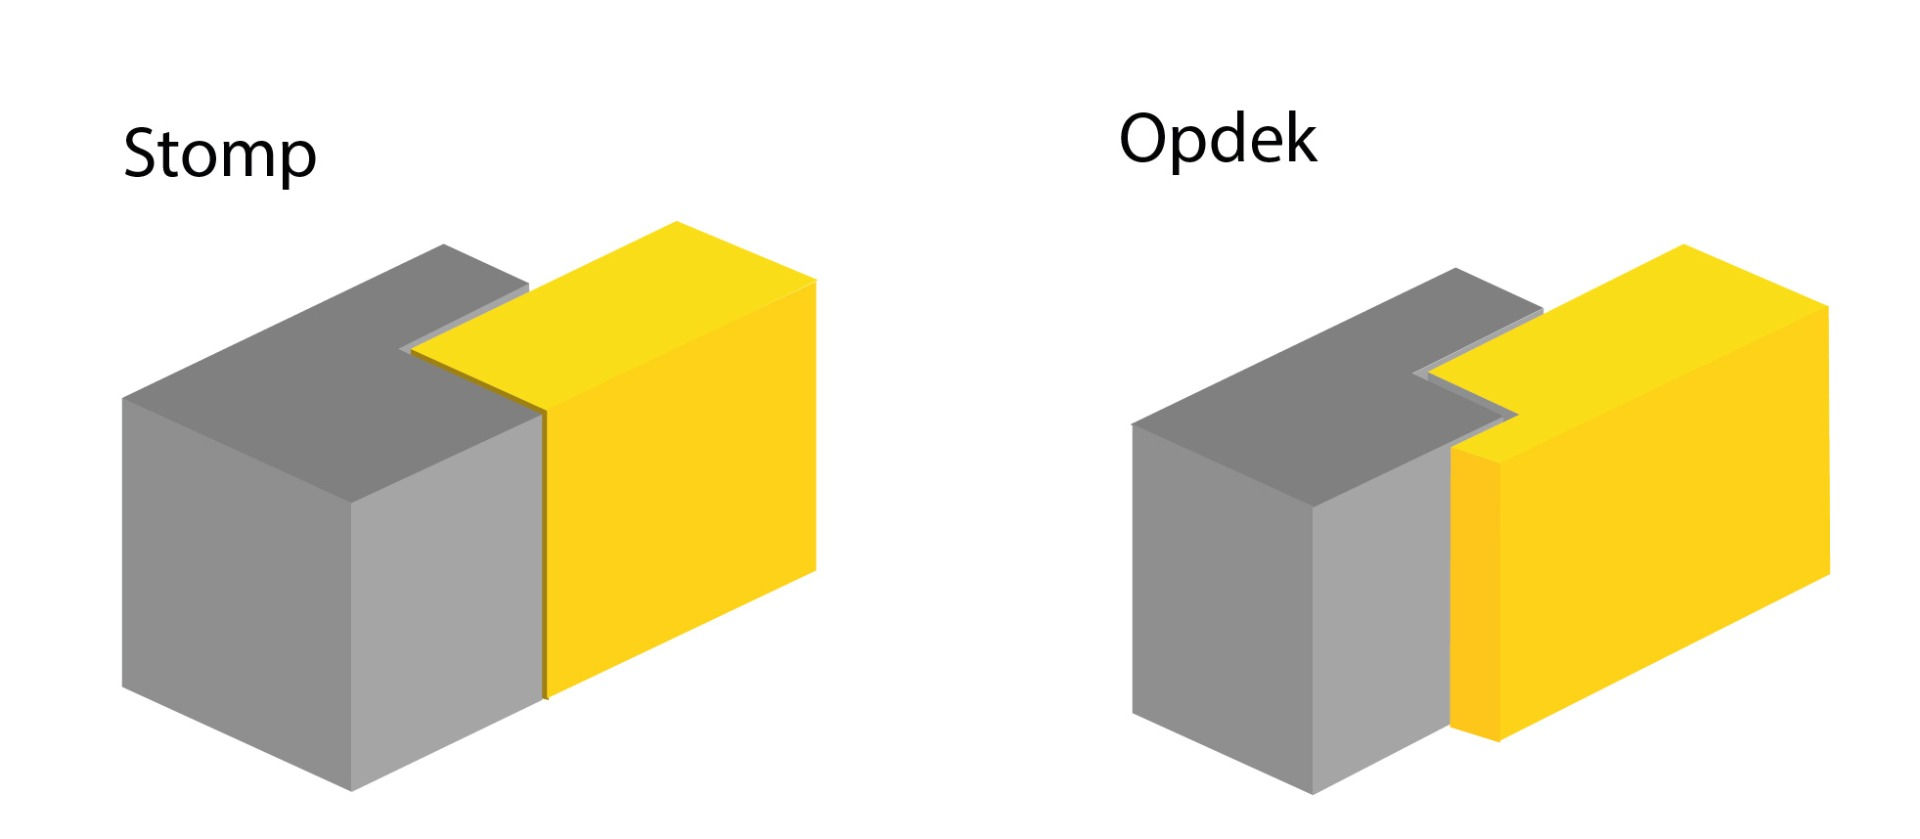 Stomp of opdek